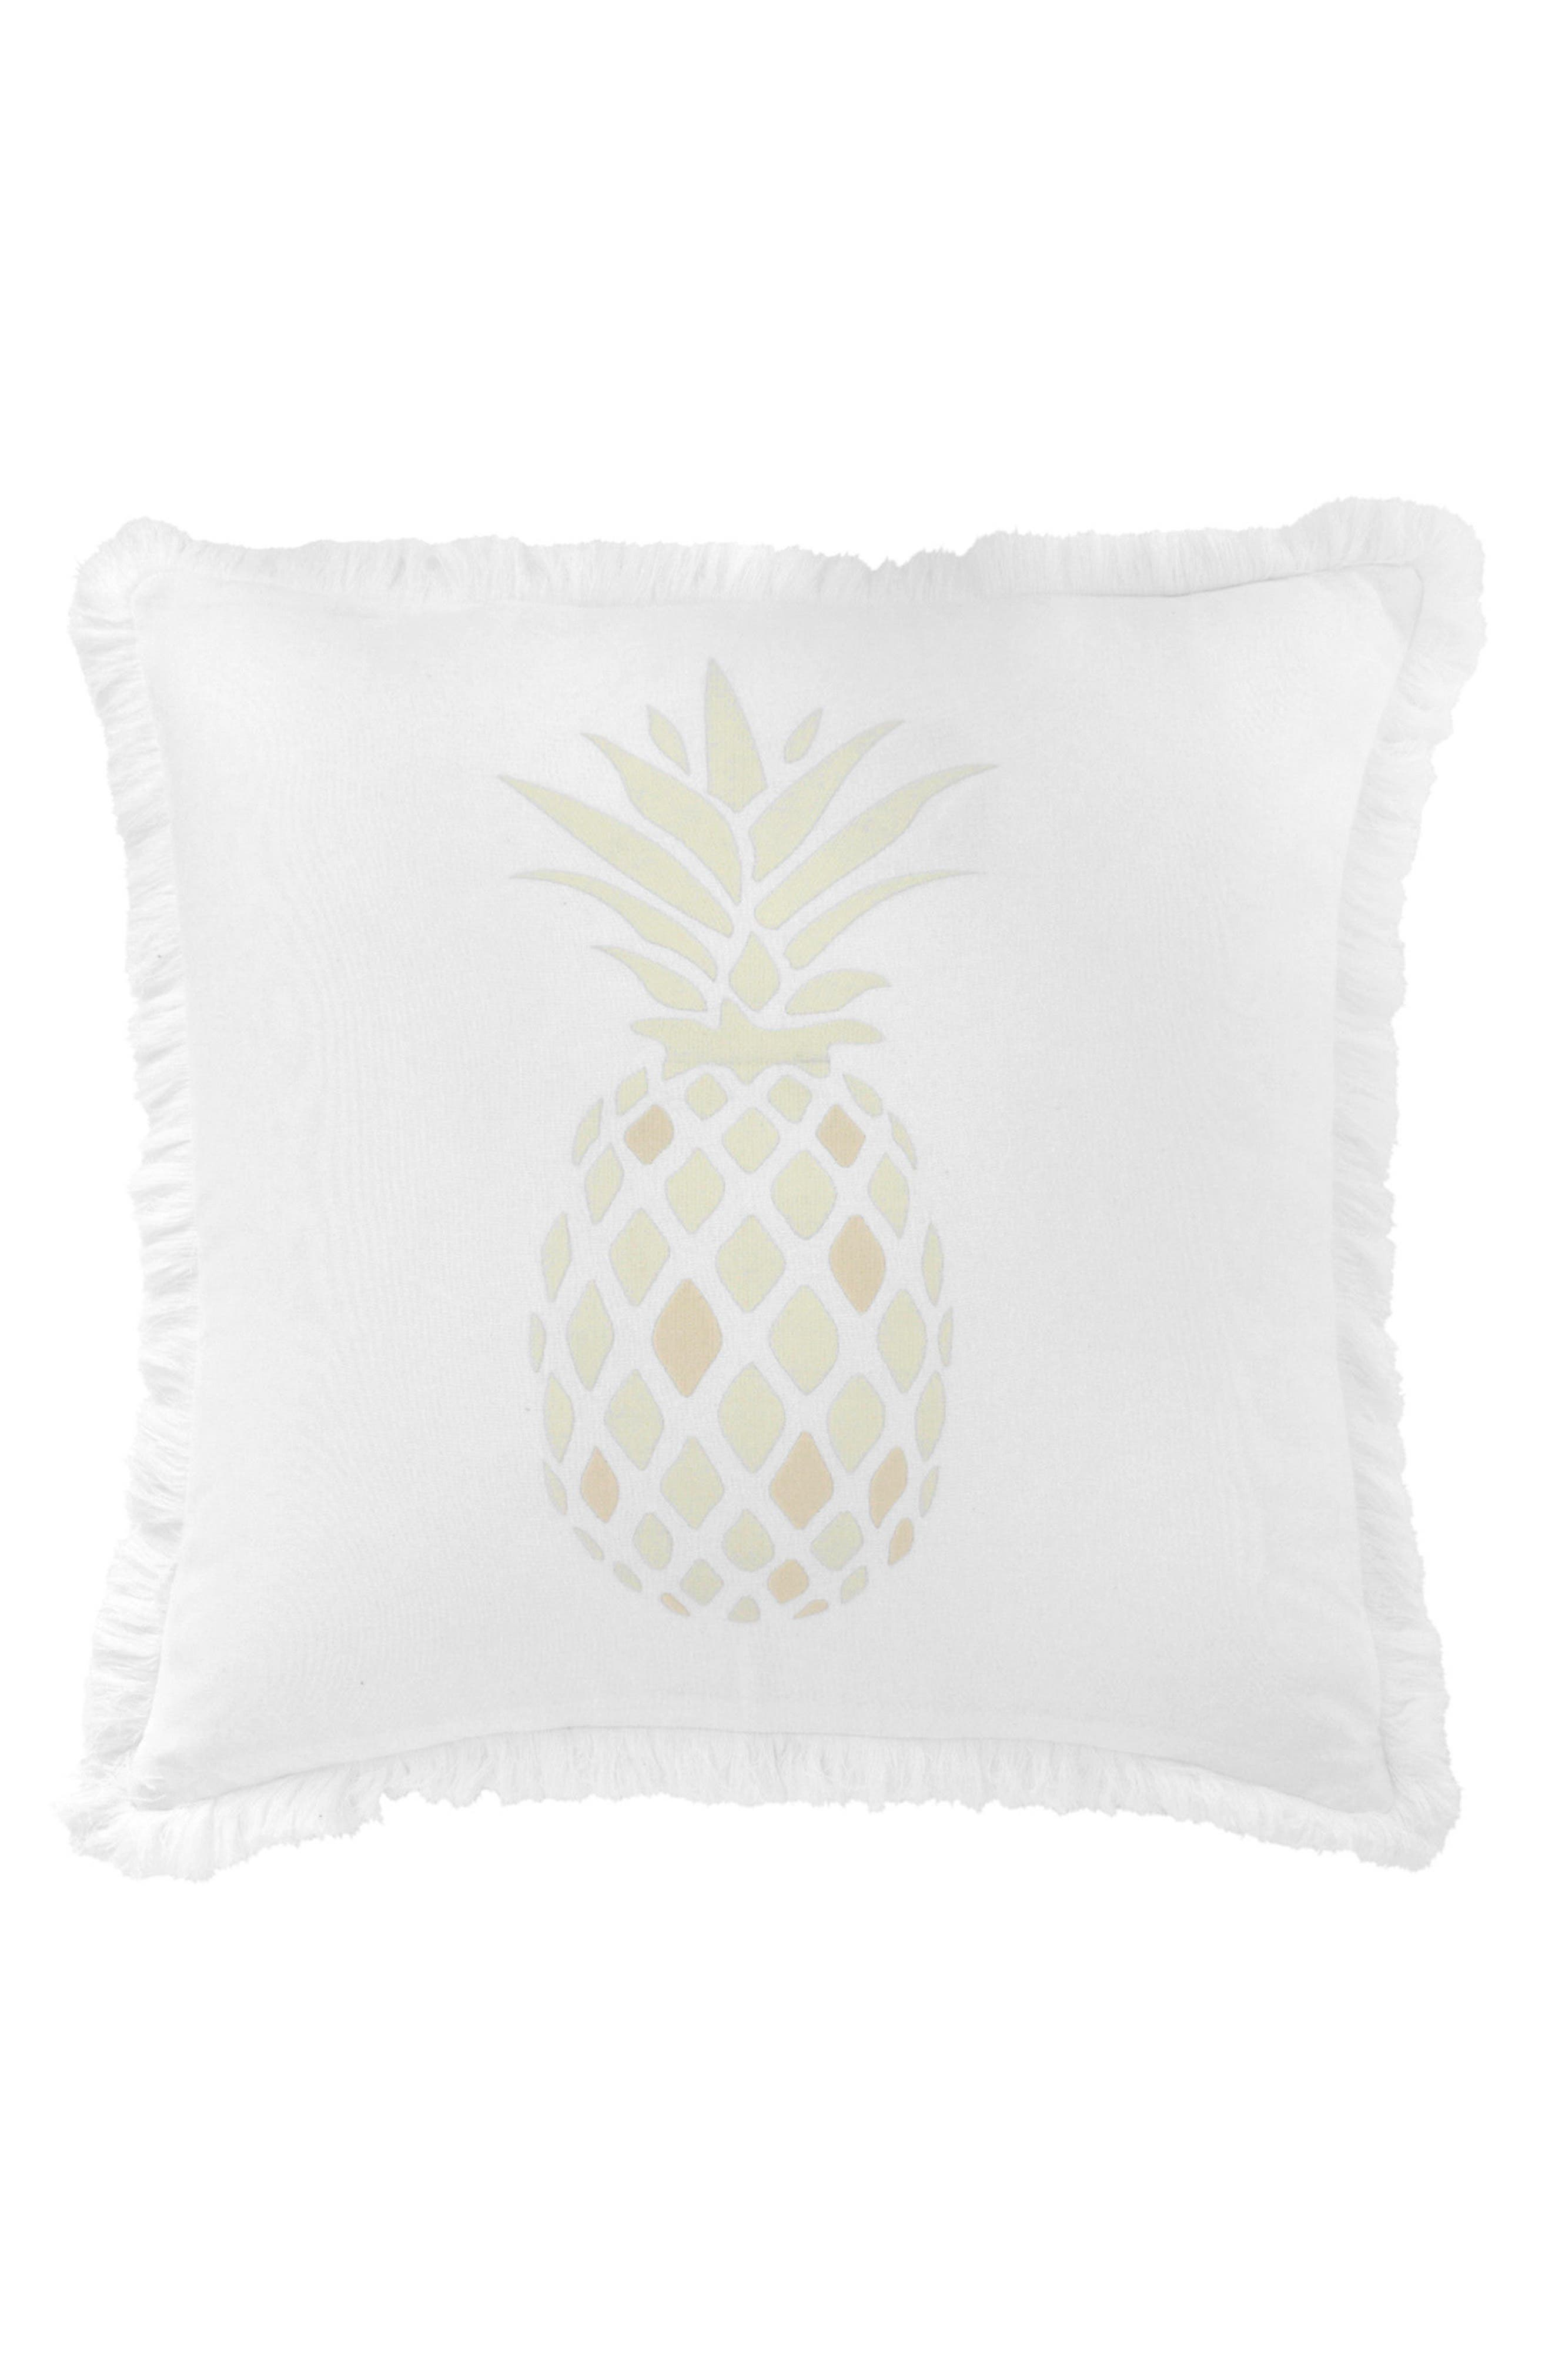 Southern Hospitality Pineapple Accent Pillow,                         Main,                         color,